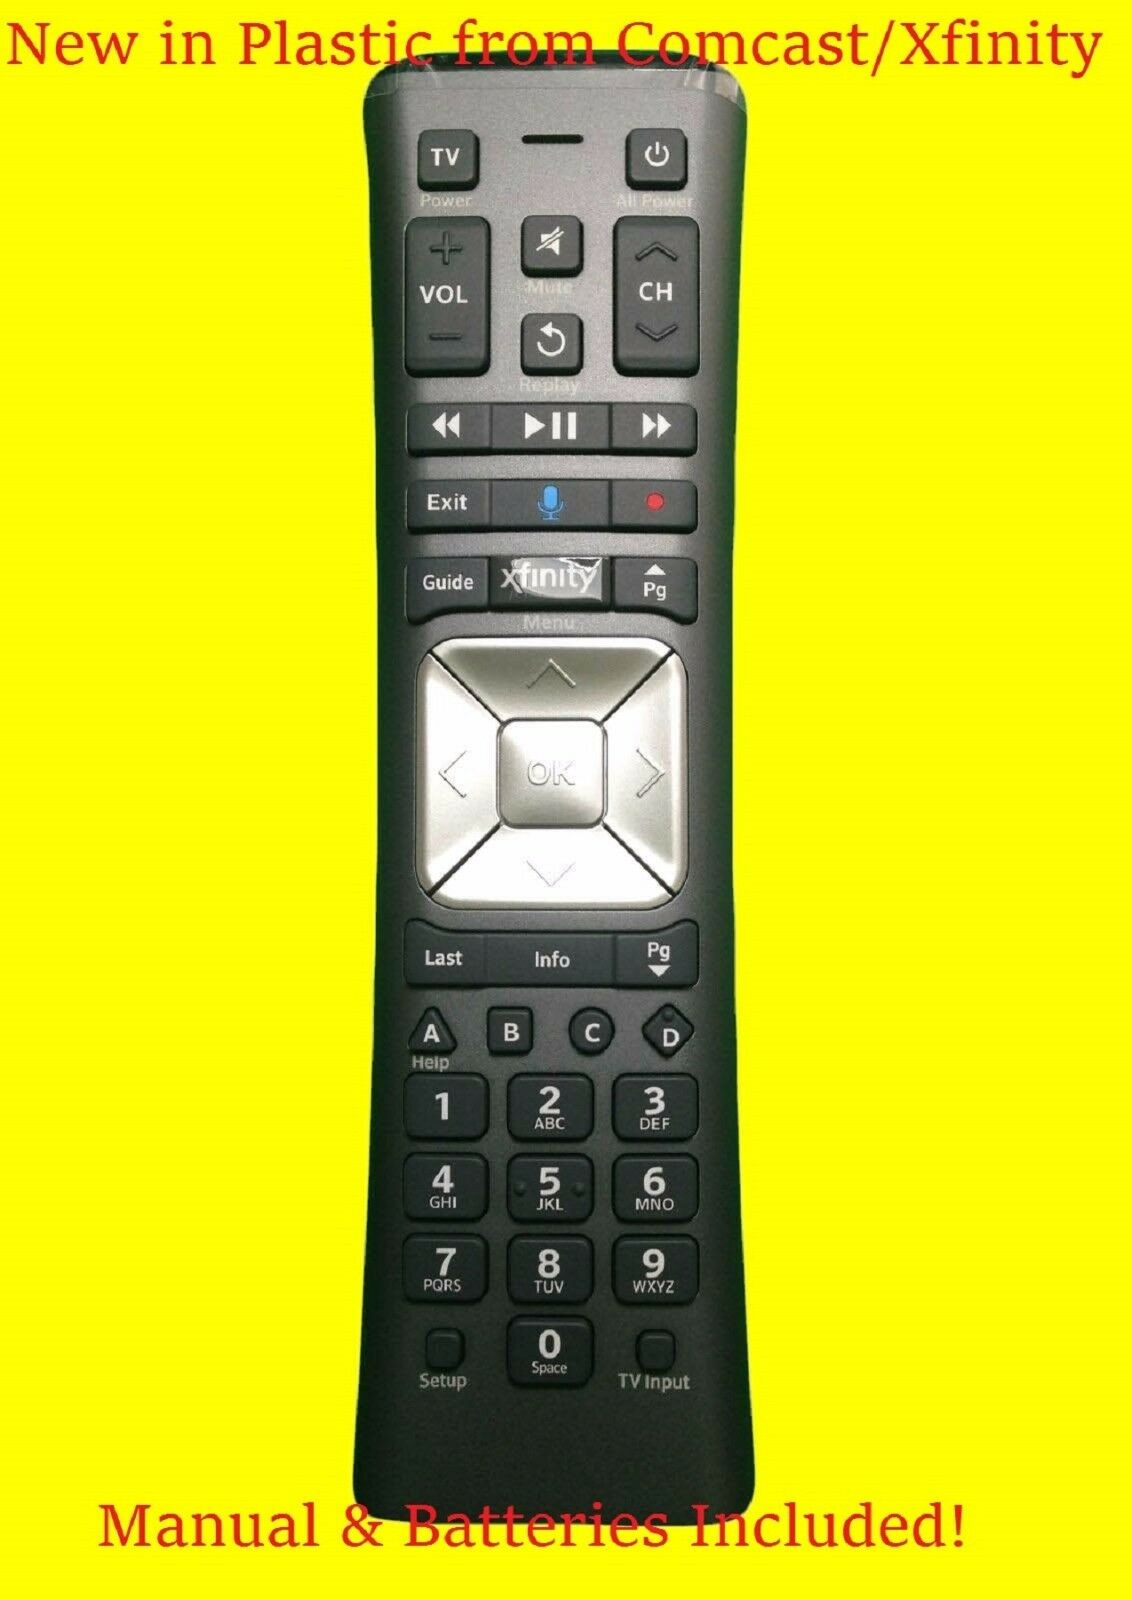 New Xfinity/Comcast VOICE Remote Control XR11 Backlight X1 with Batteries  Manual | Shopping Bin - Search eBay faster